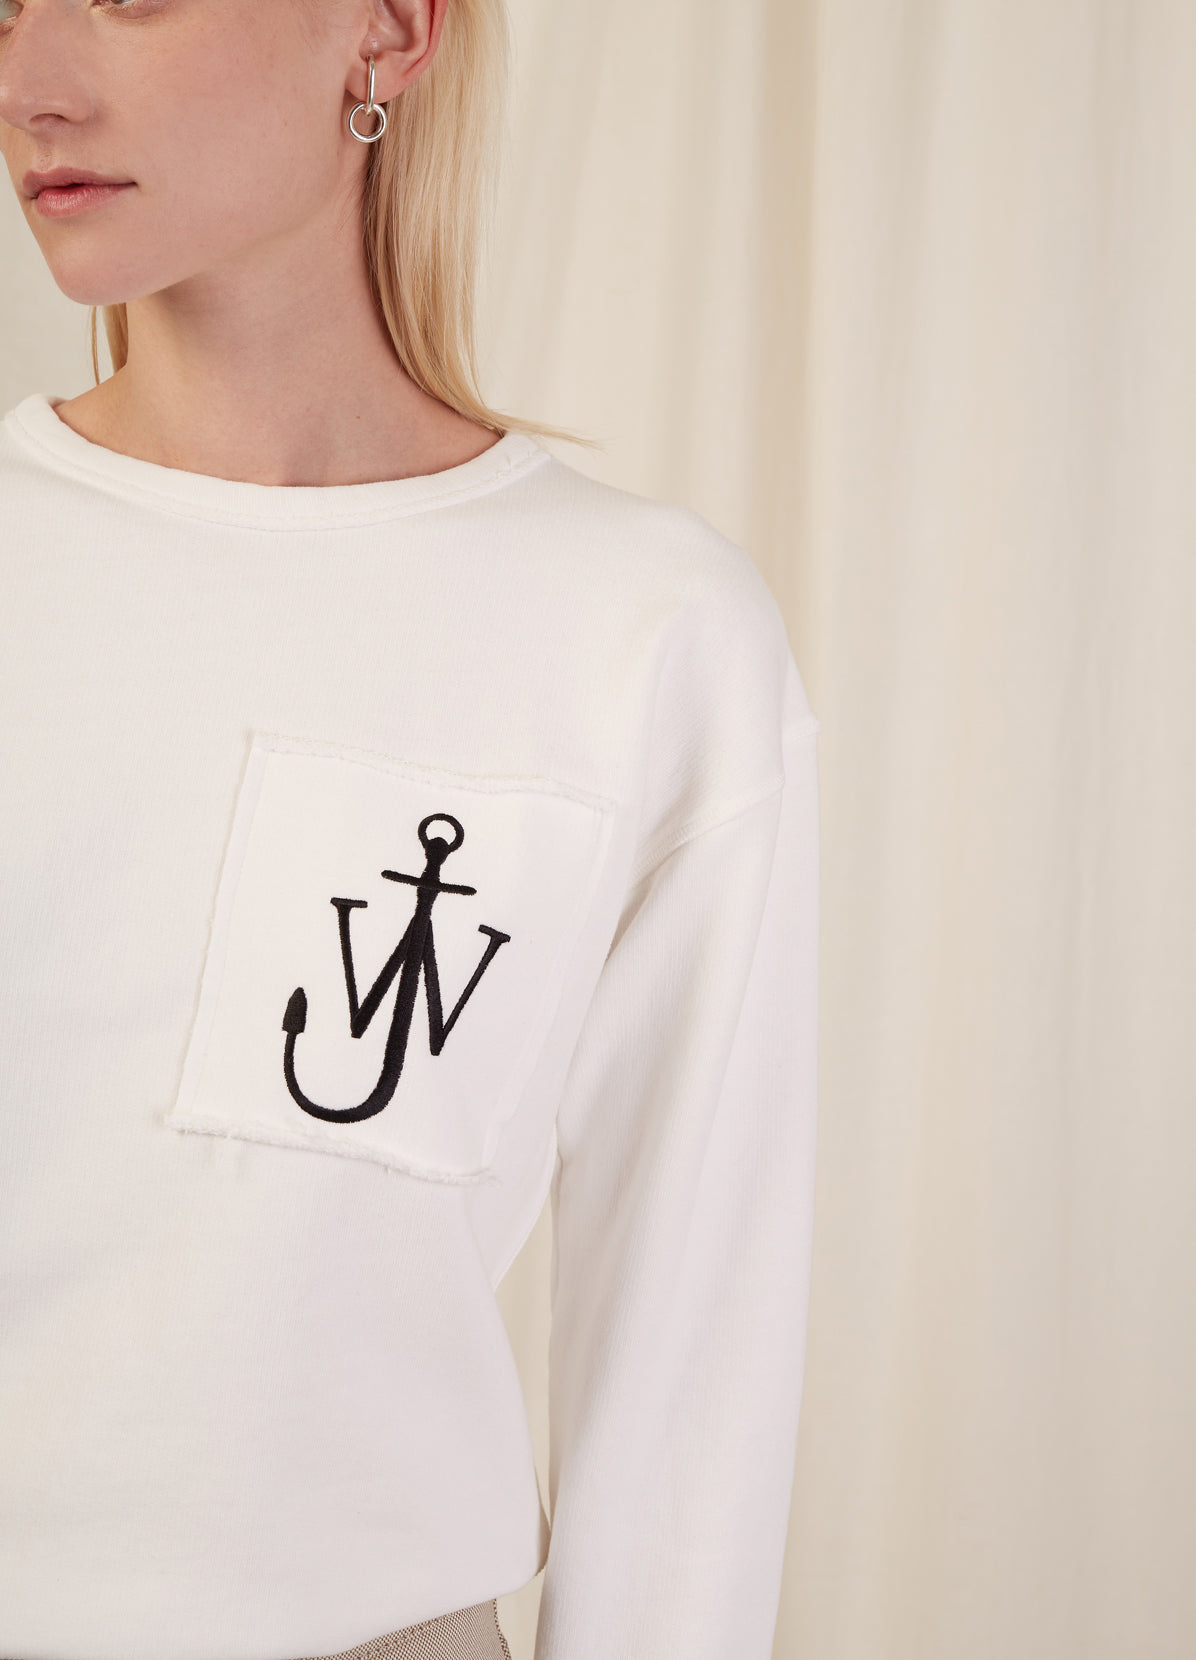 LOGO SWEATSHIRT WITH POCKET DETAIL